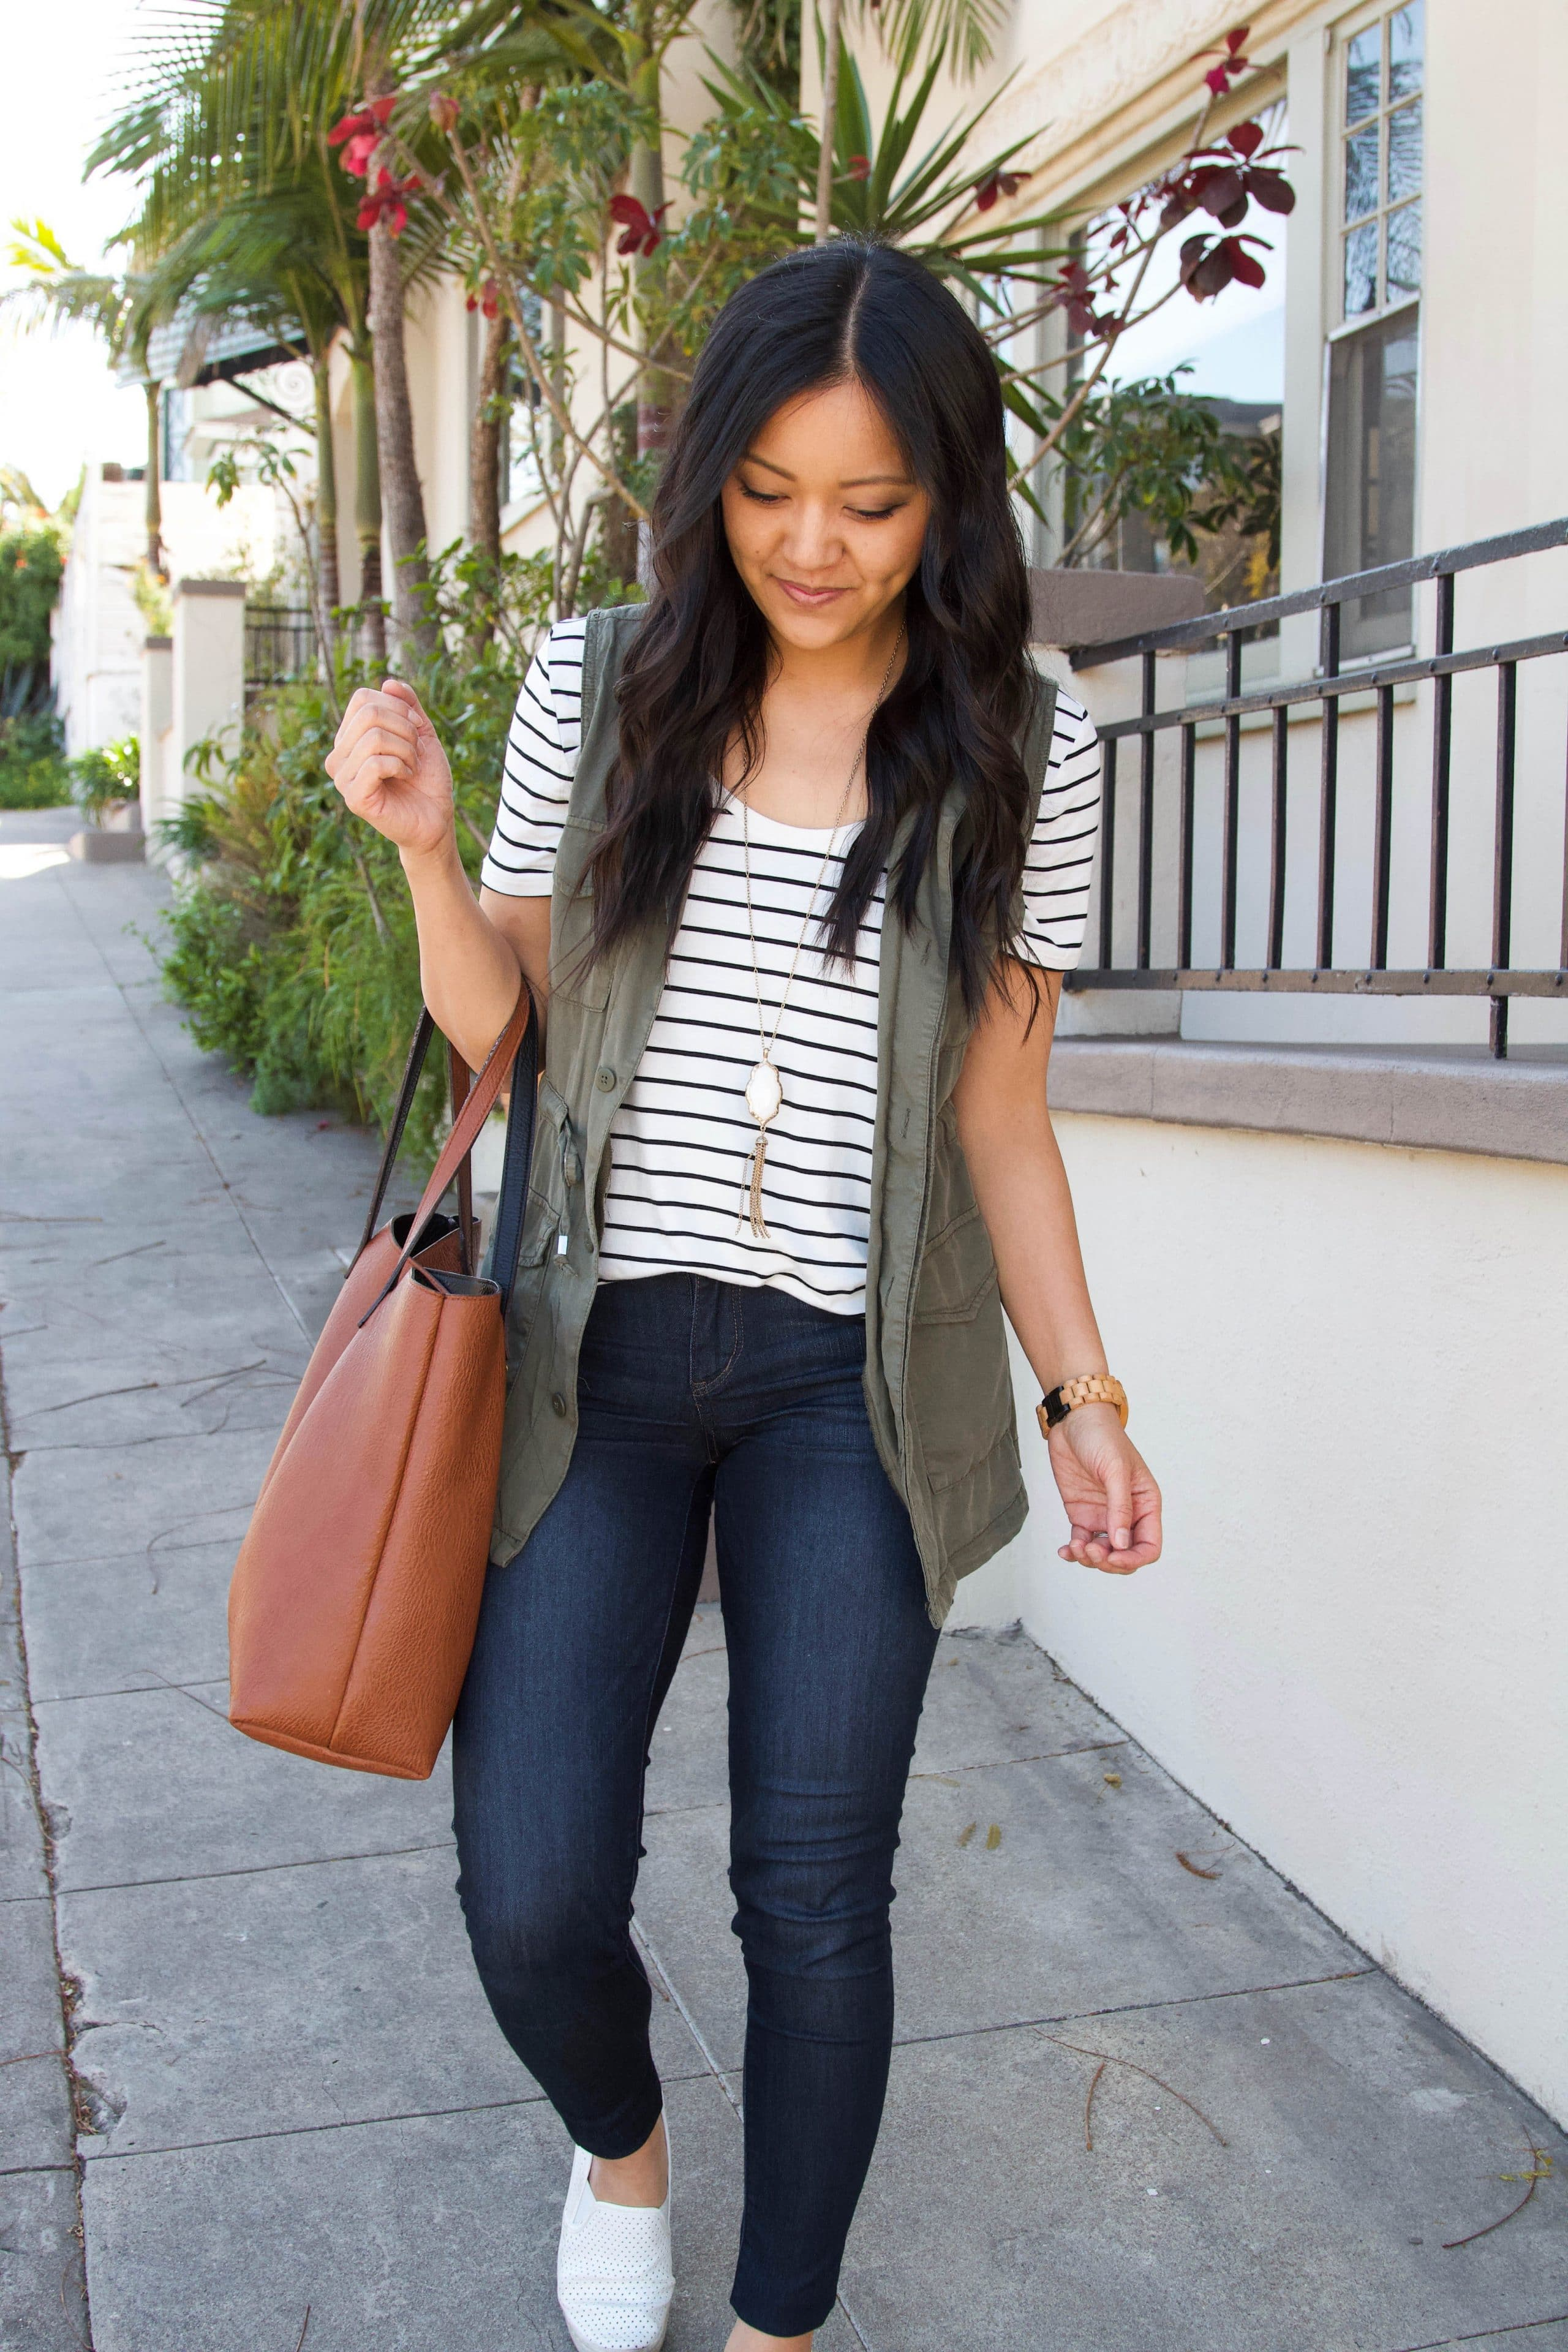 black and white striped tee + olive utility vest + denim skinny jeans + white loafers + cognac tote